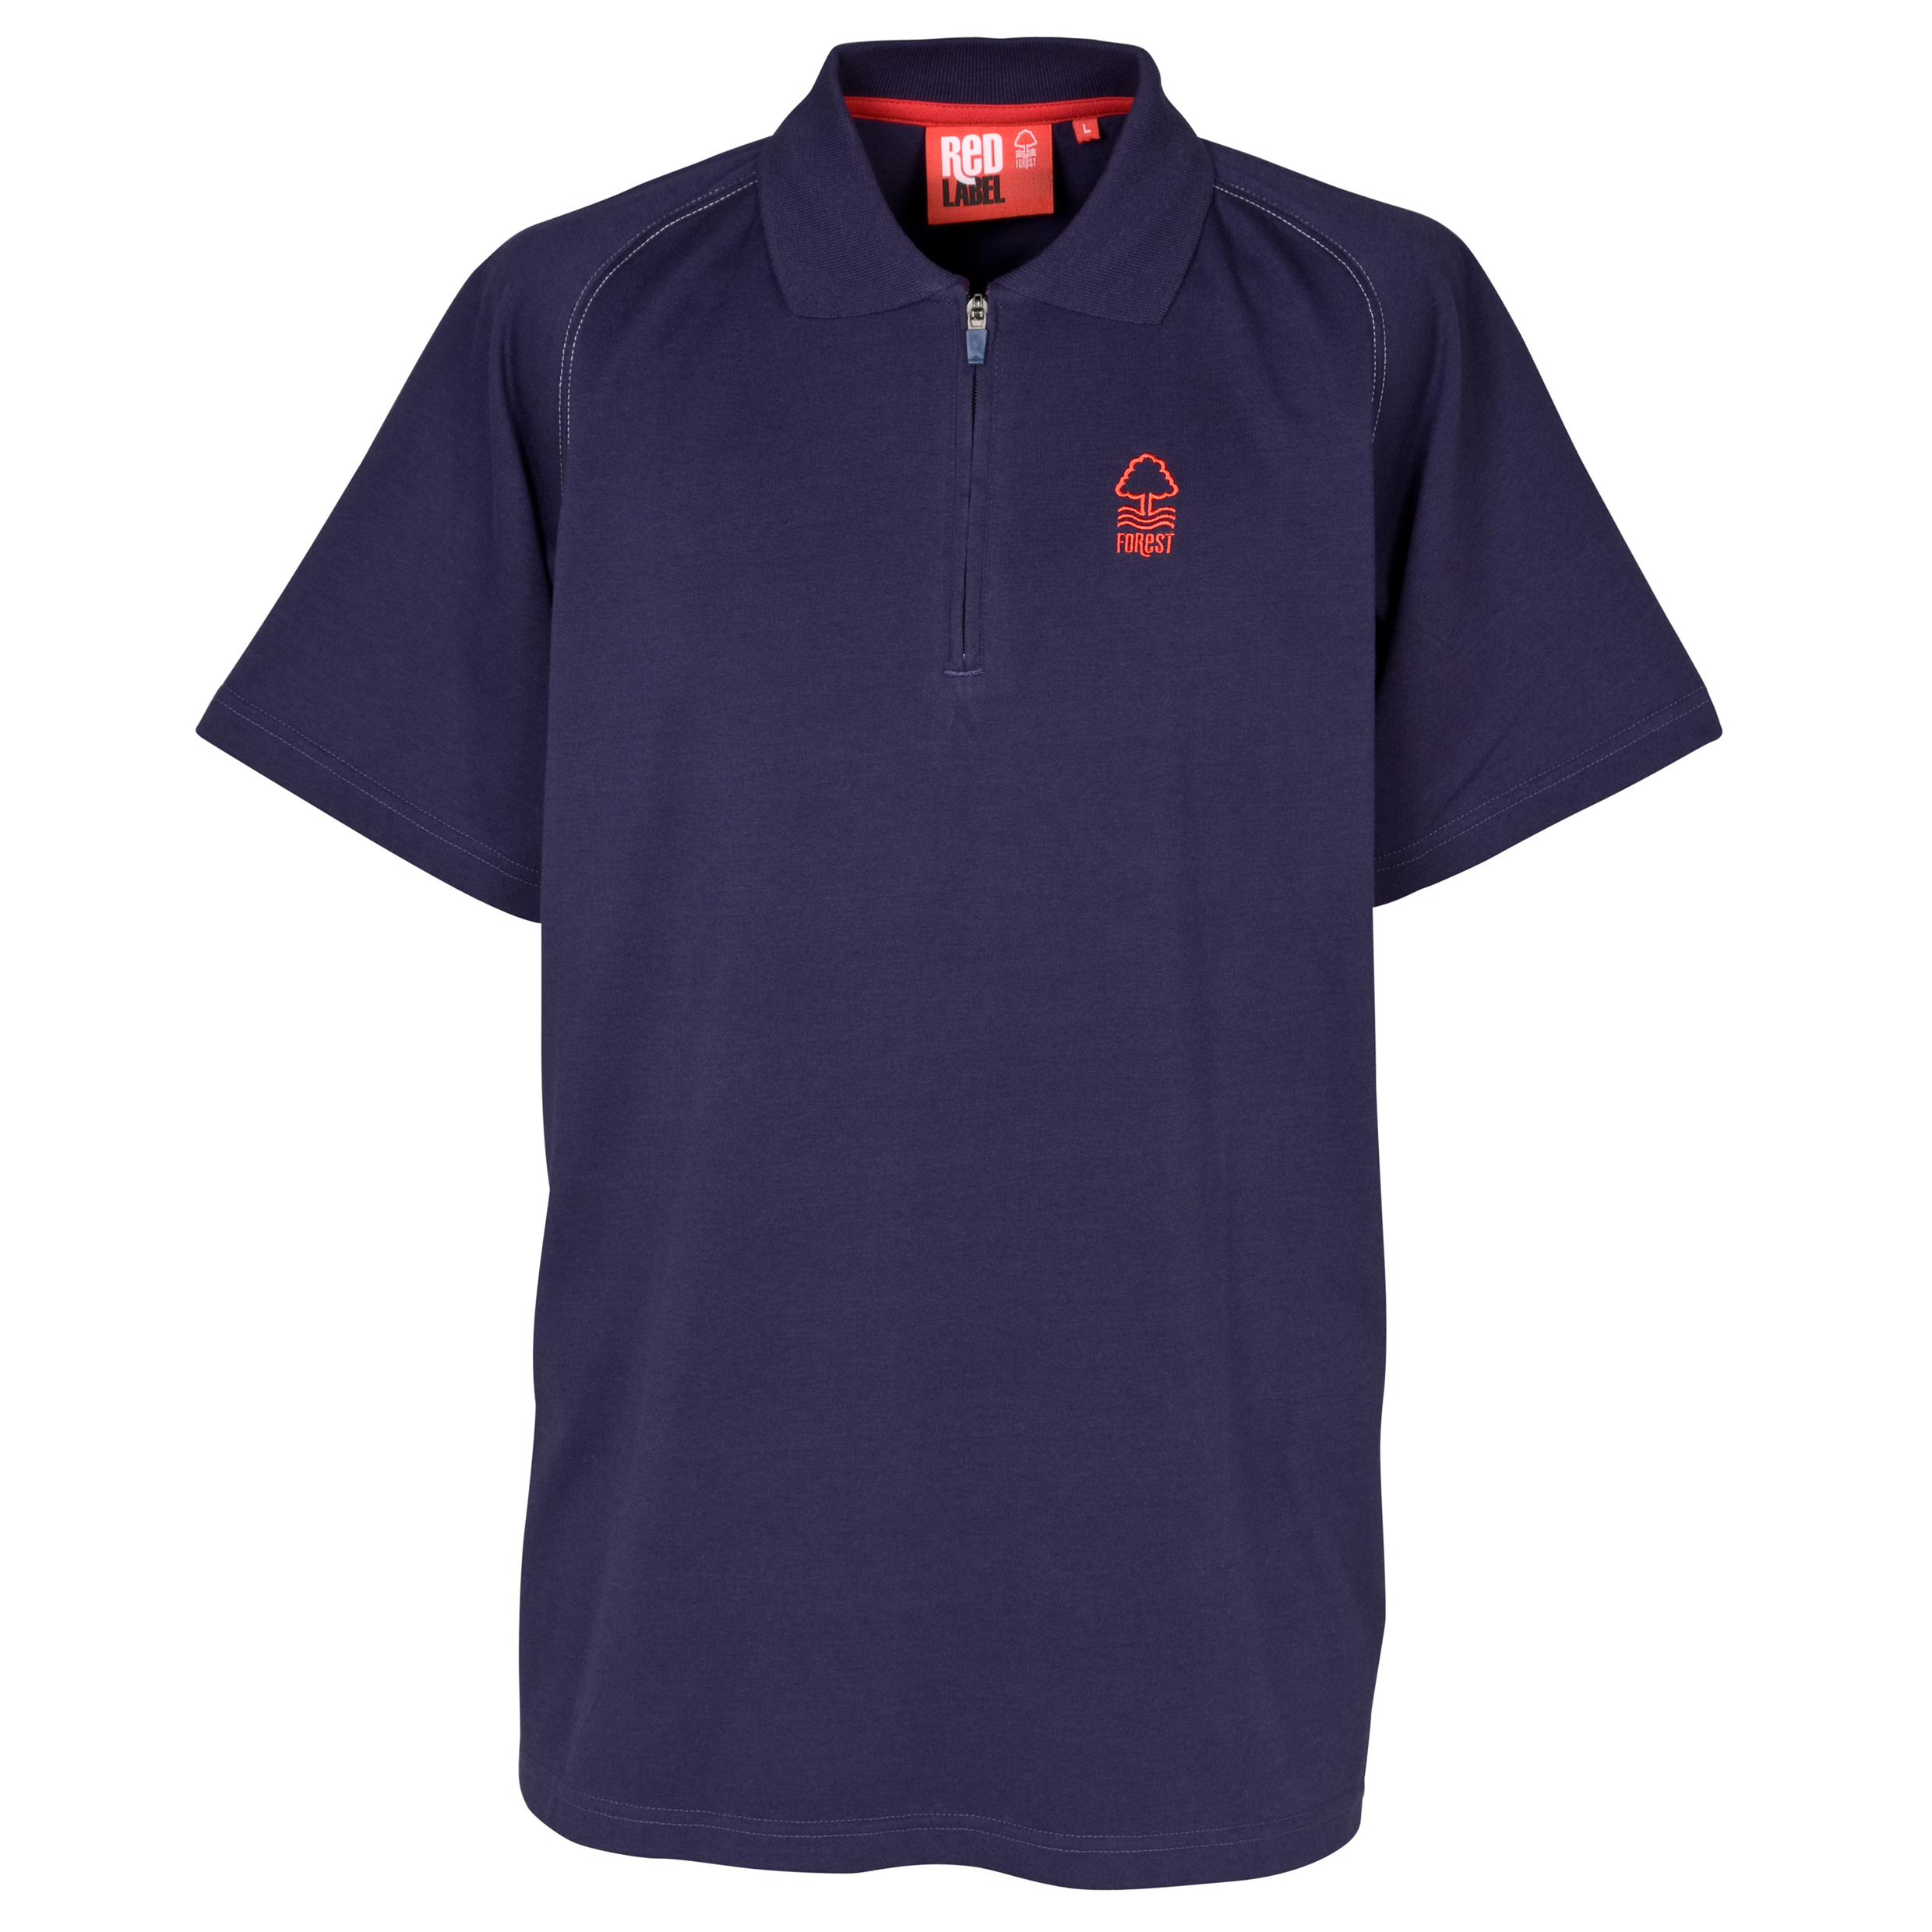 Nottingham Forest Essential Stones Zip Polo Top - Navy